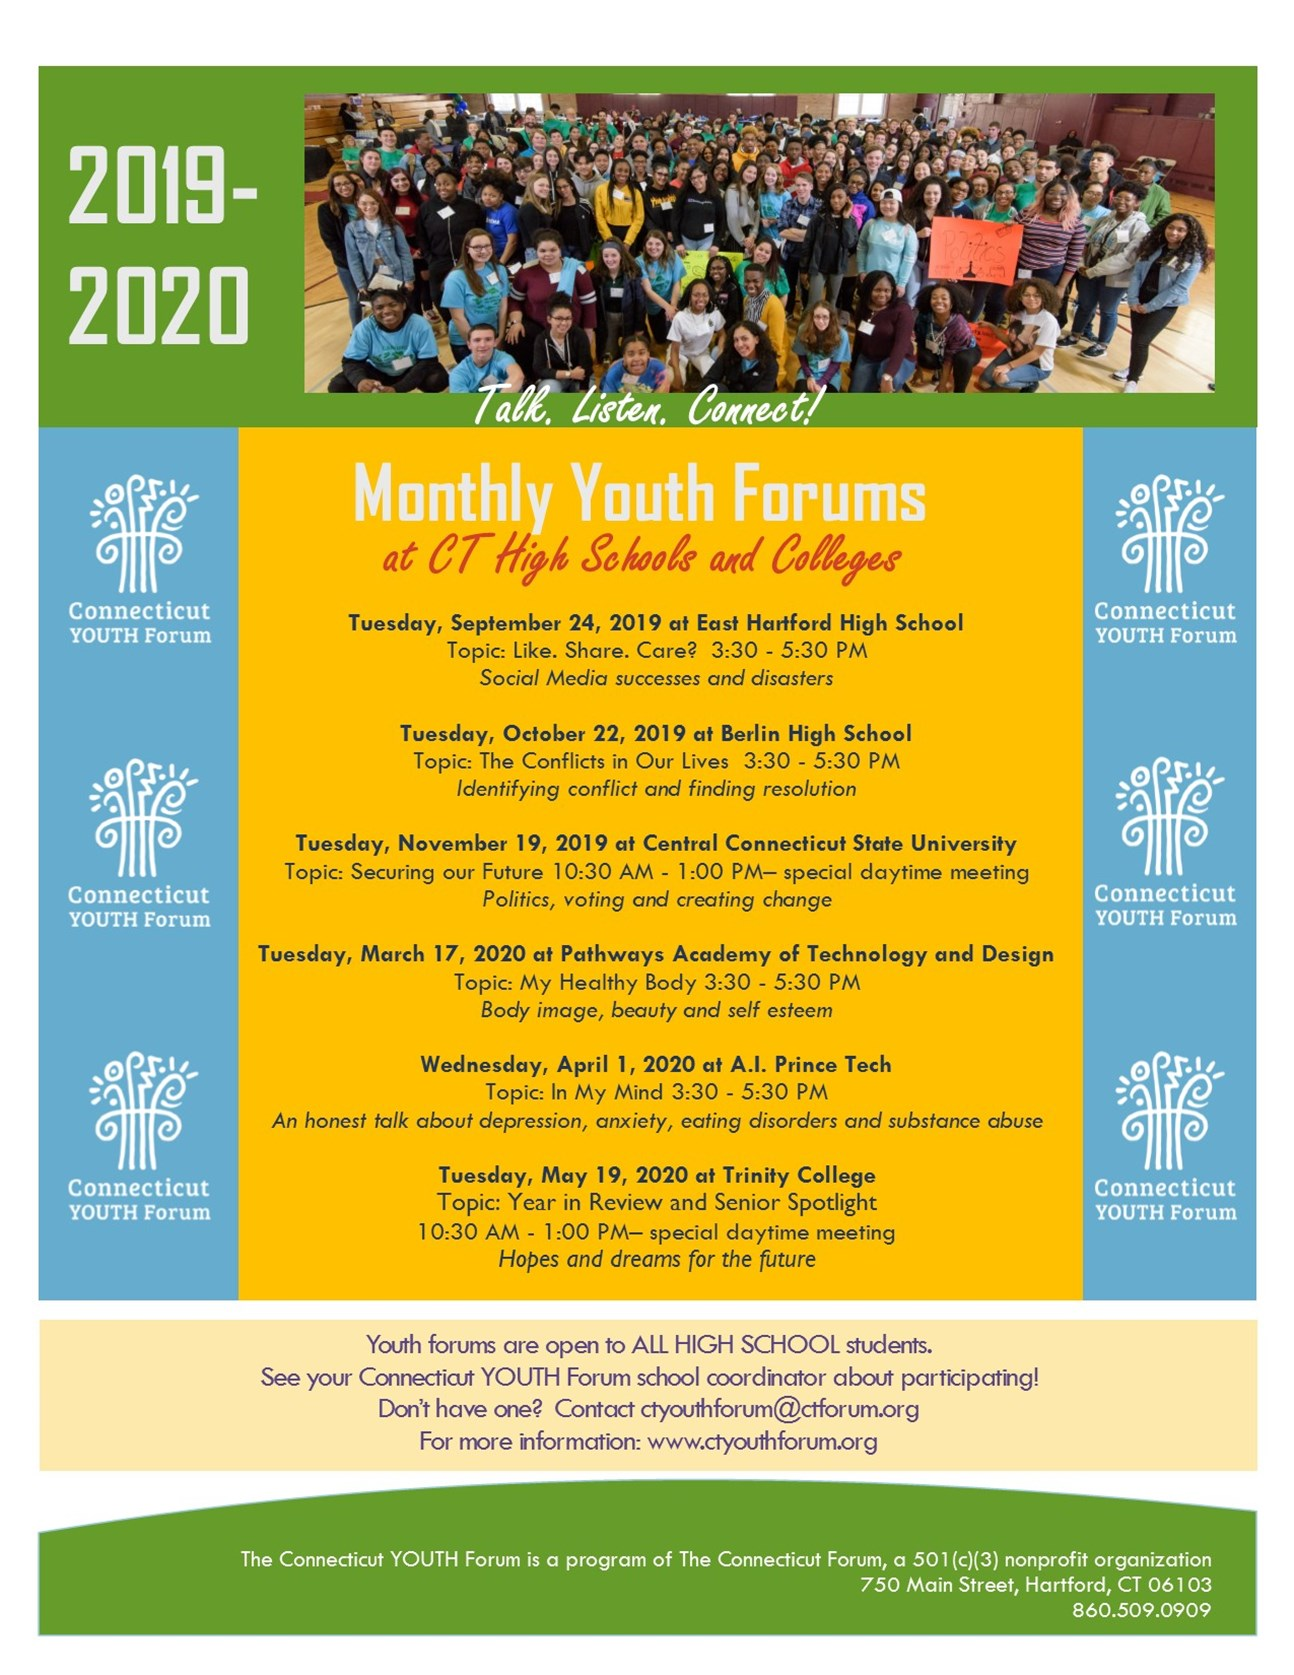 The Connecticut Forum - The Connecticut Youth Forum